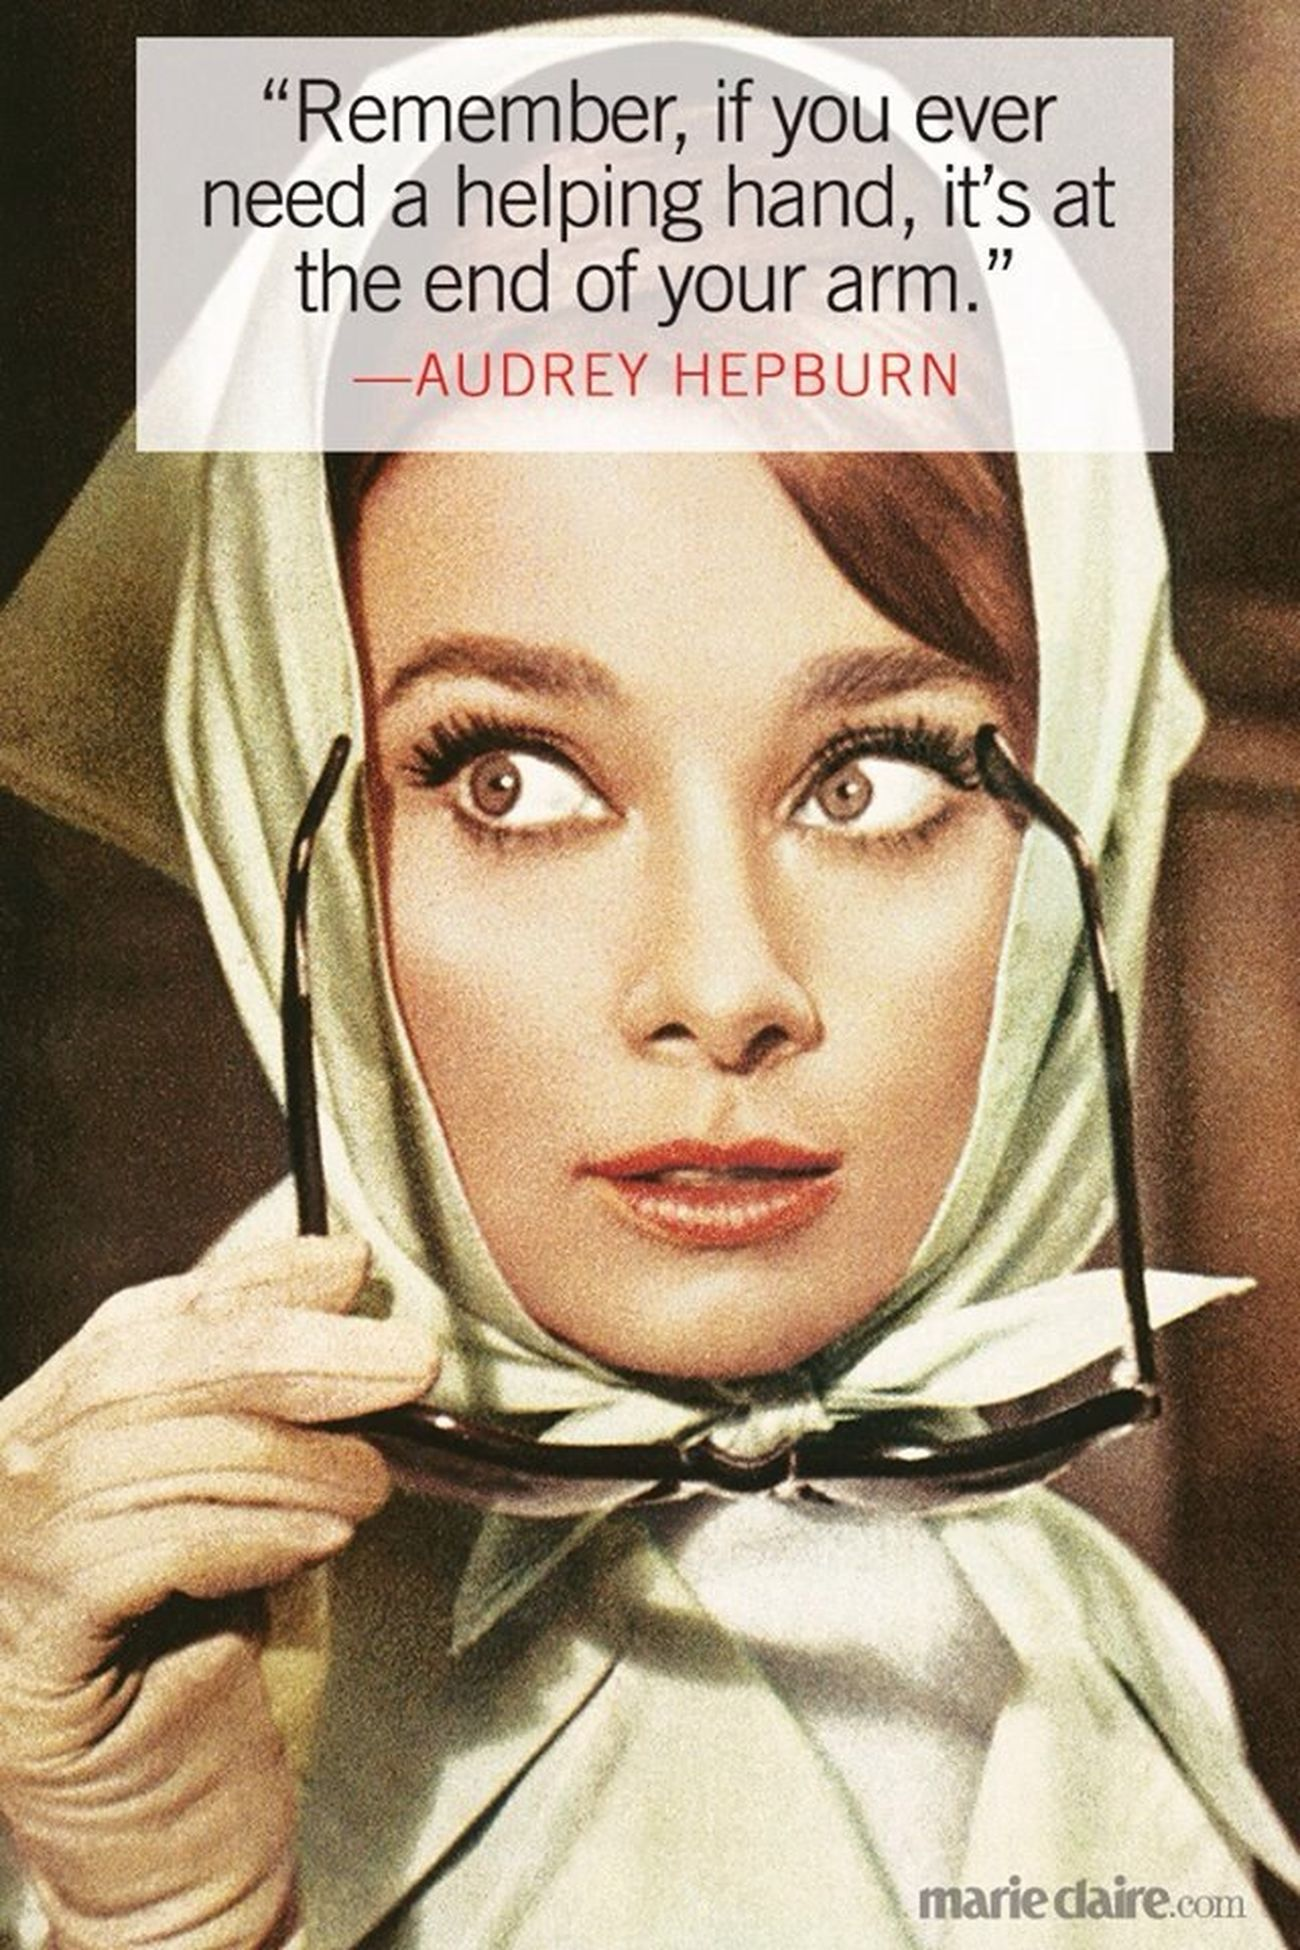 Libya Tripoli Check This Out Audry Hepburn